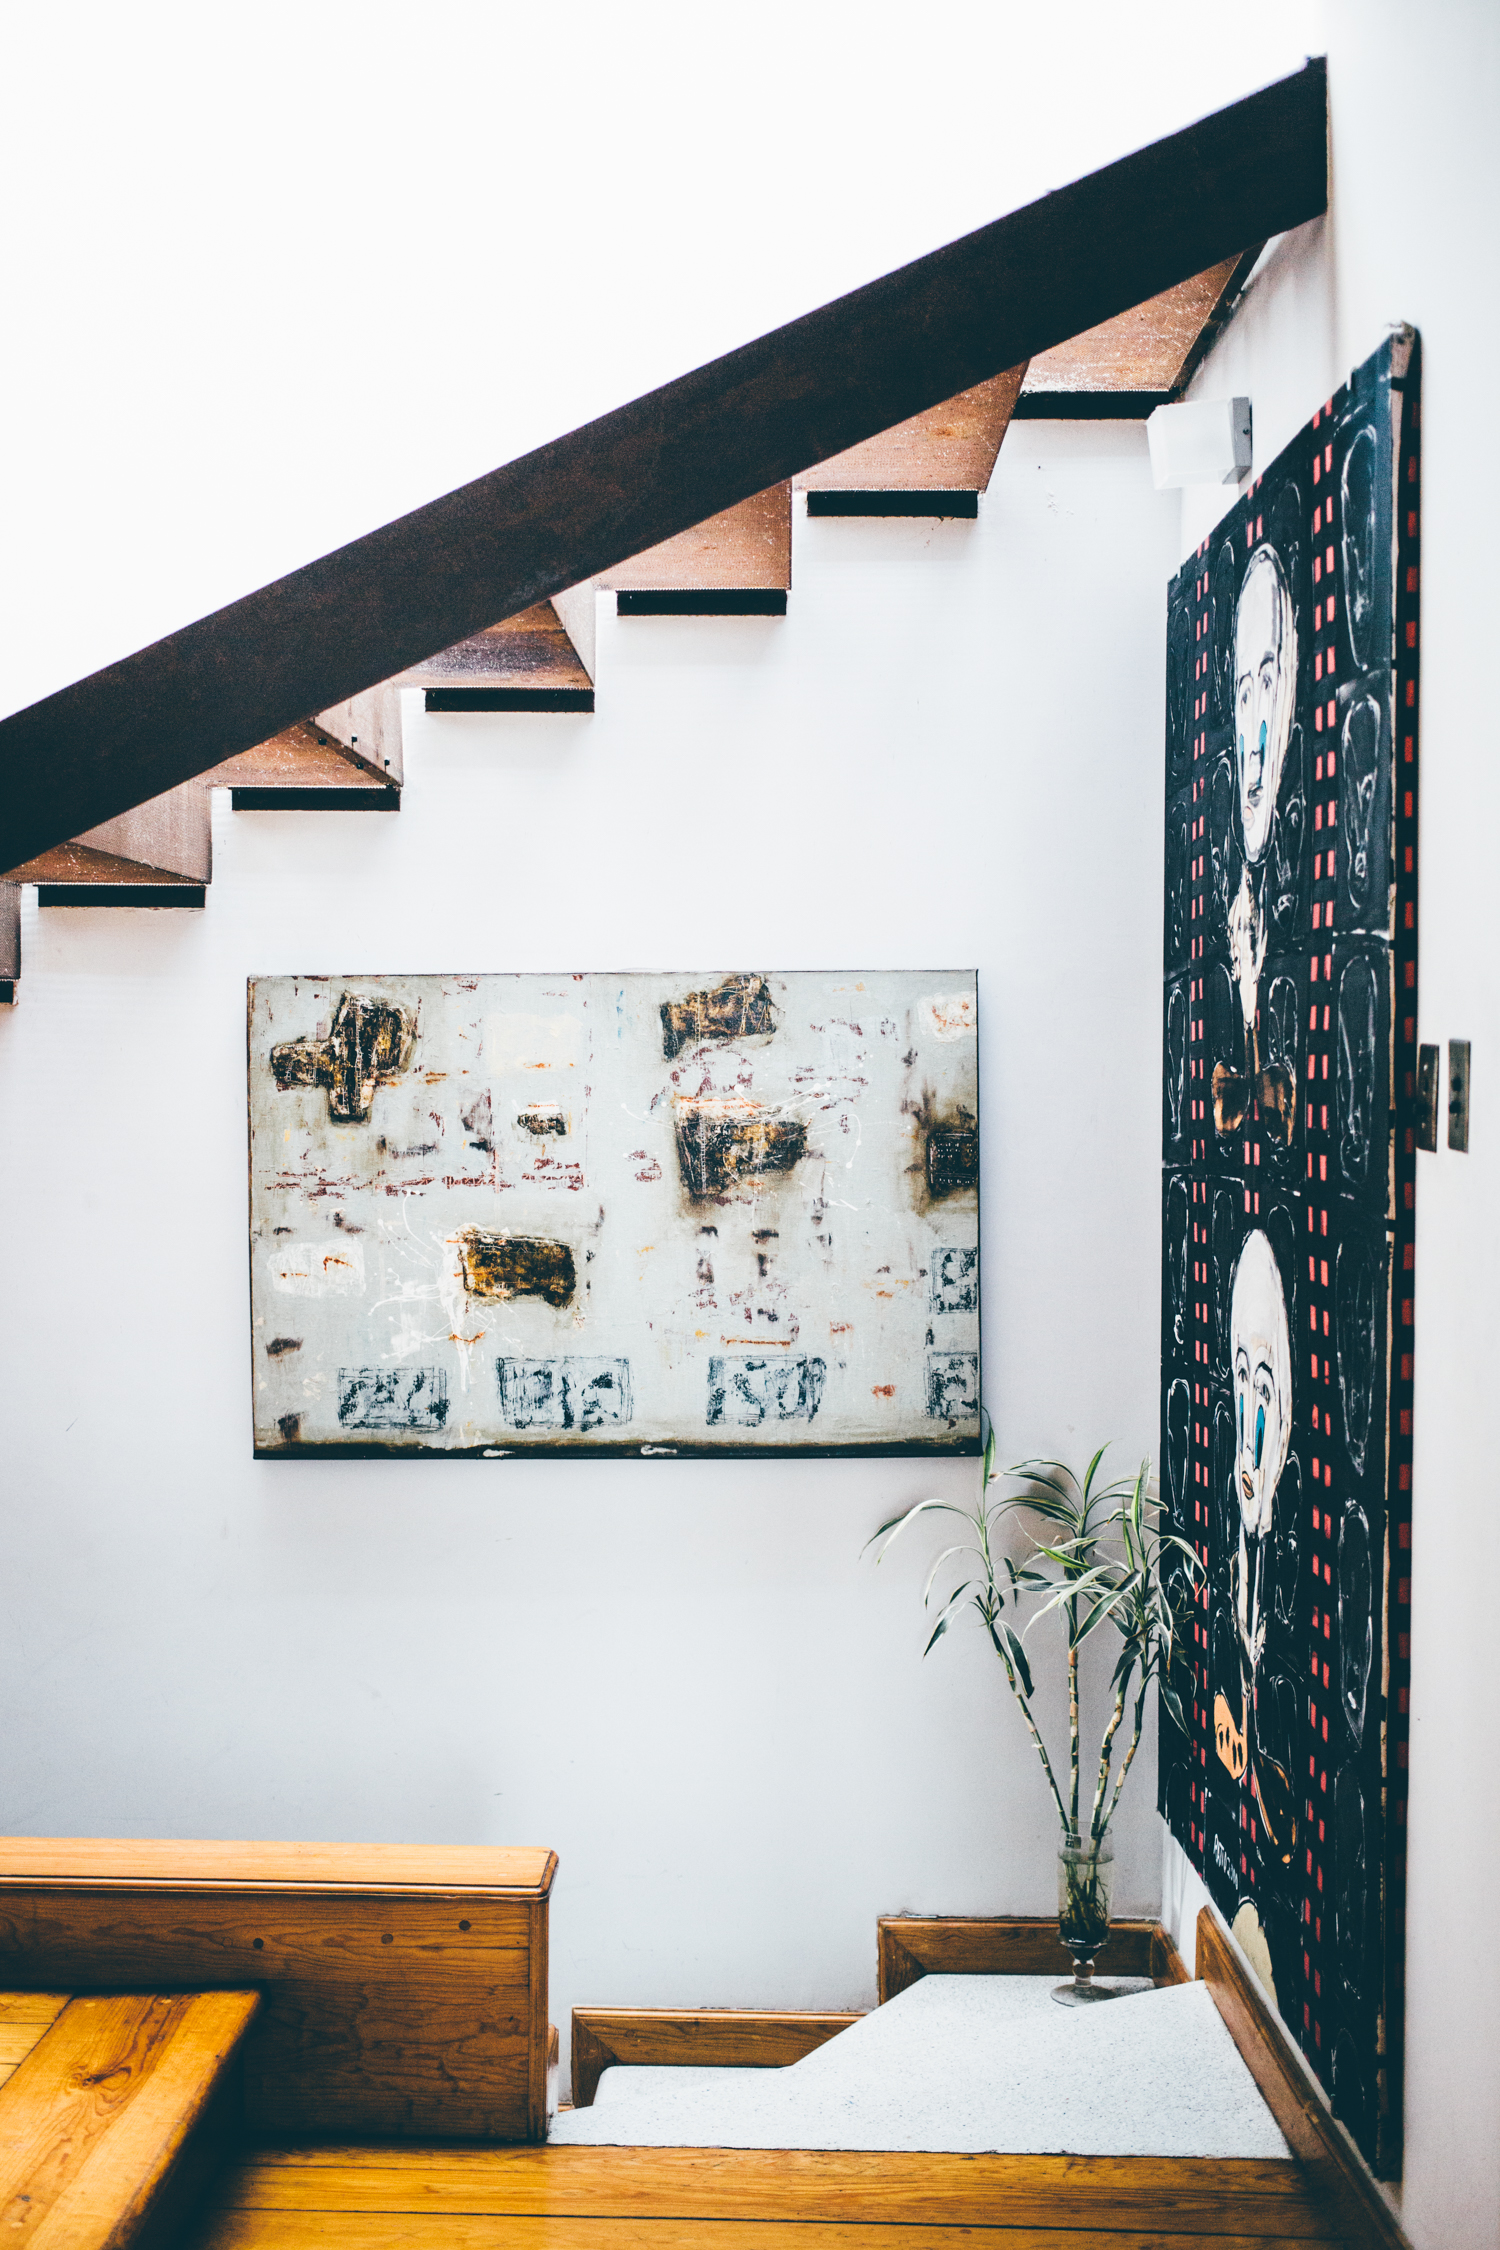 Interior staircase and wall art.